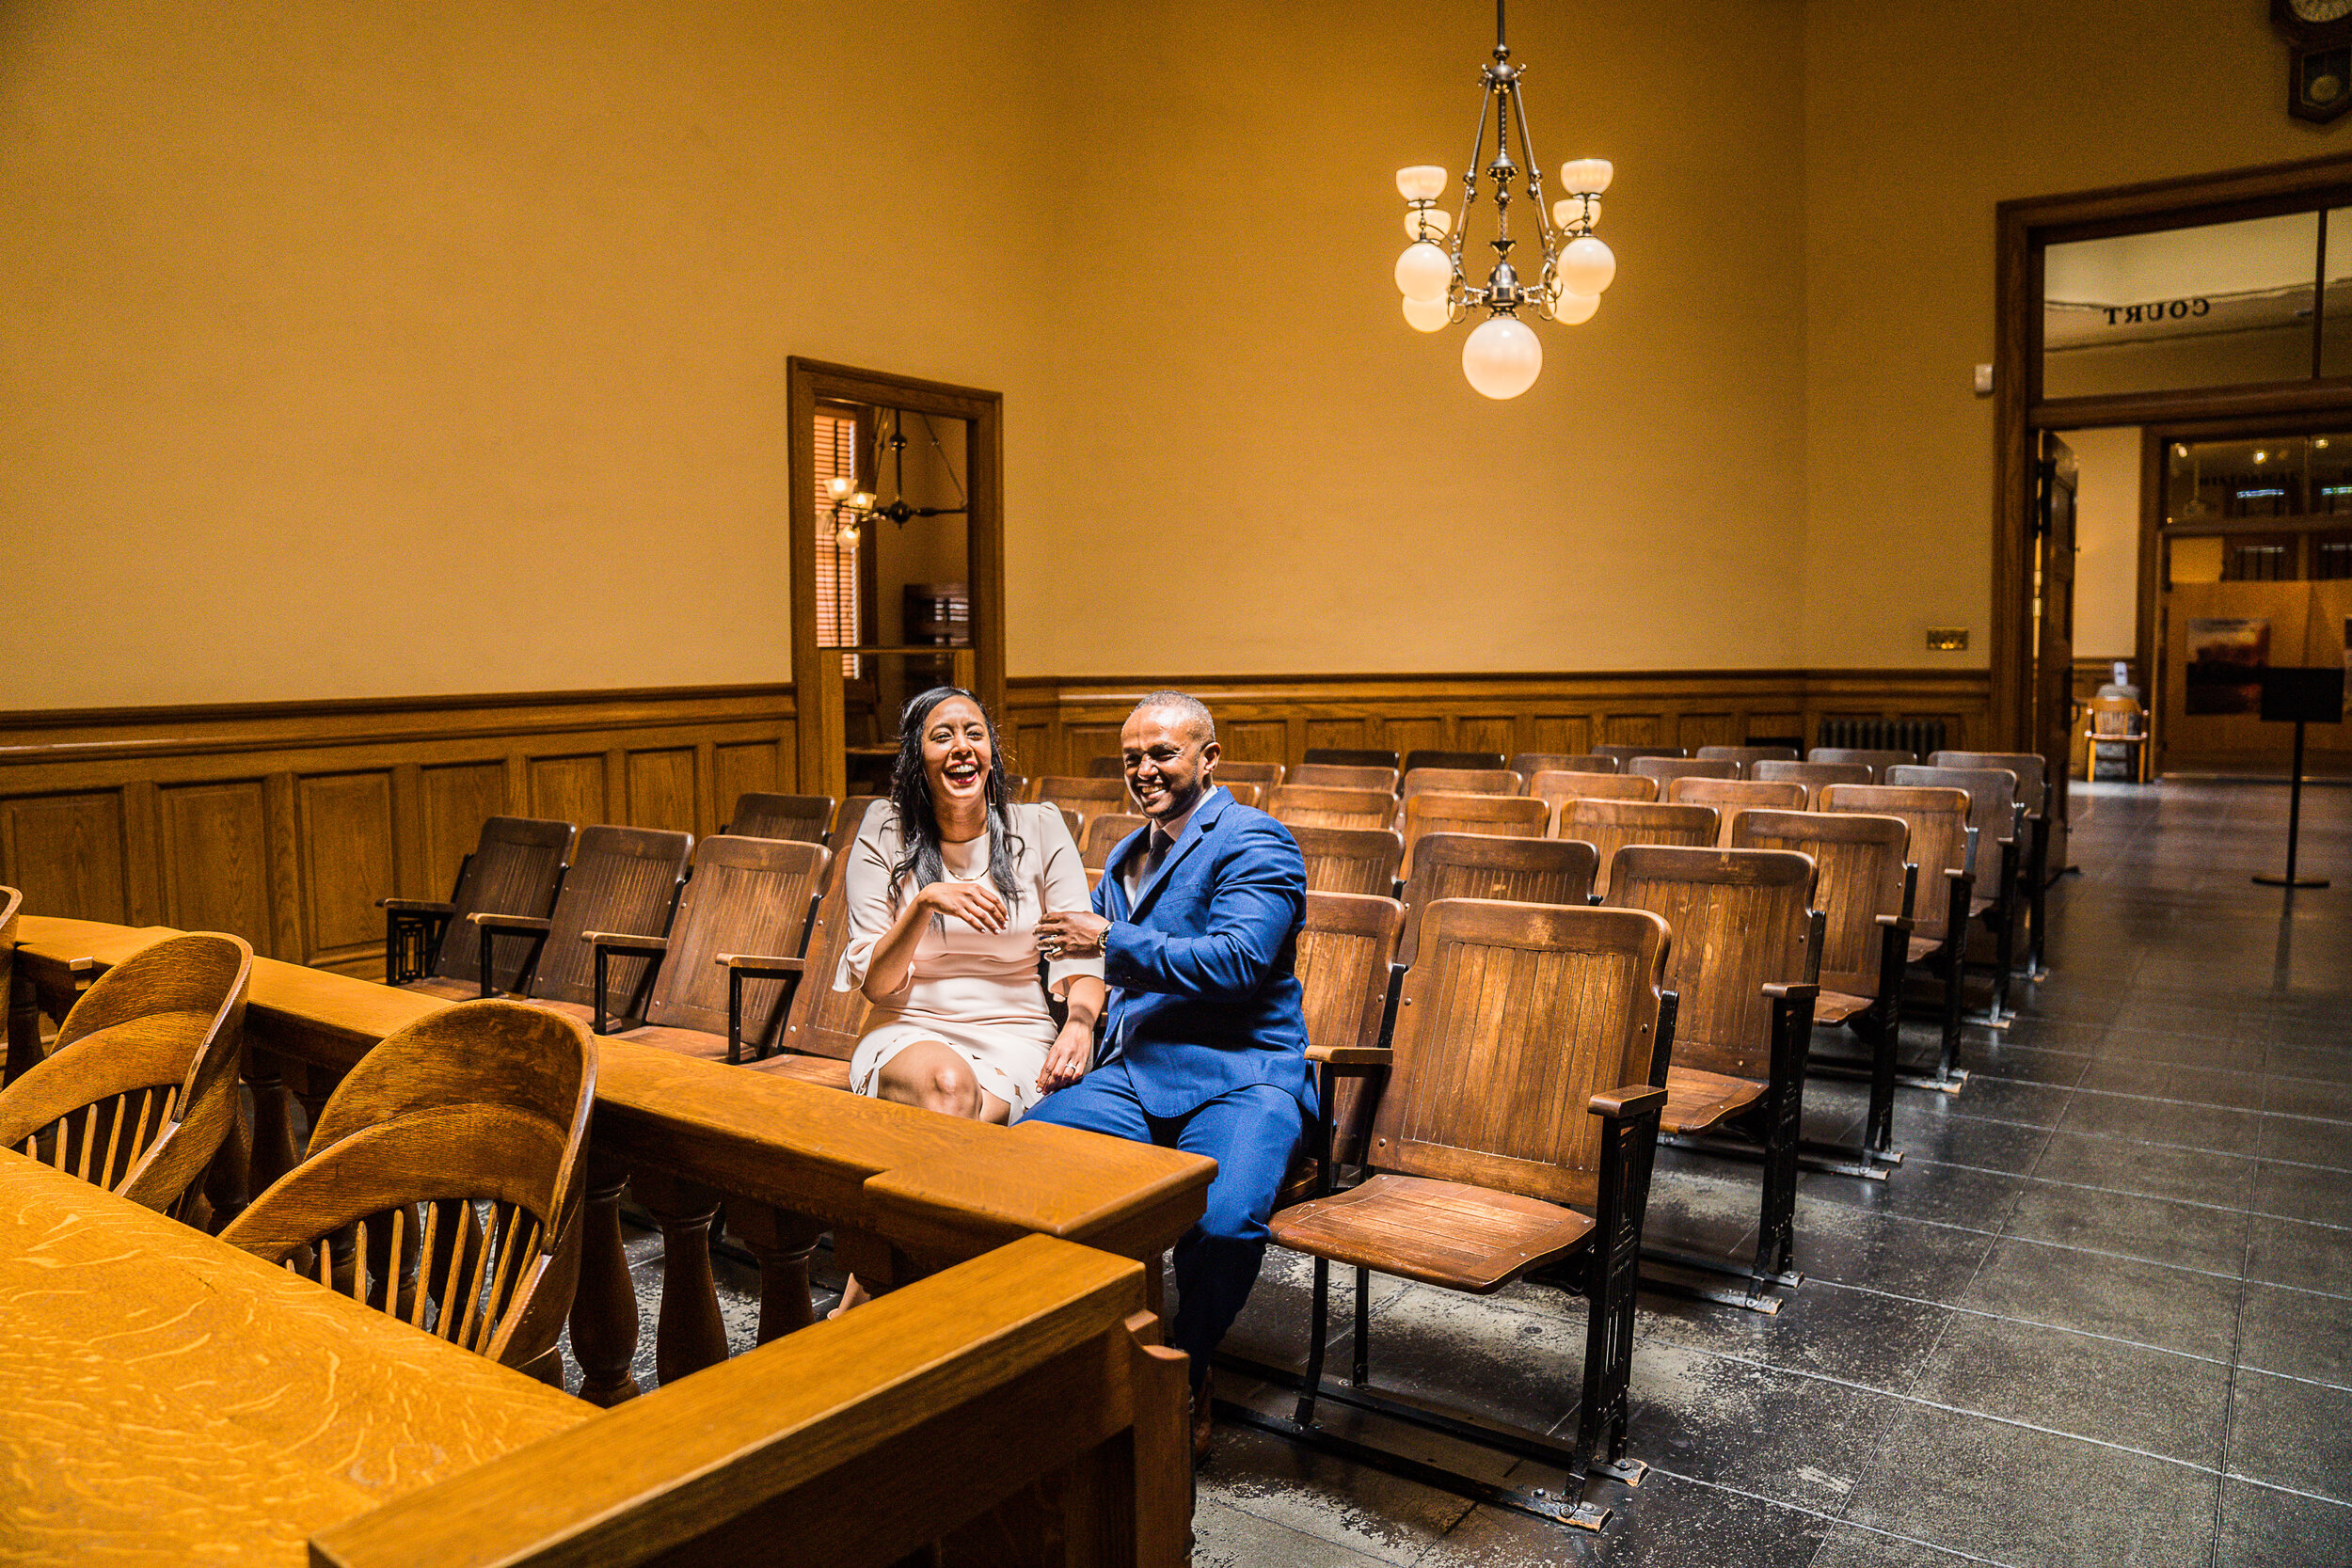 sewit-elopement-orange-county-santa-ana-courthouse-29.jpg